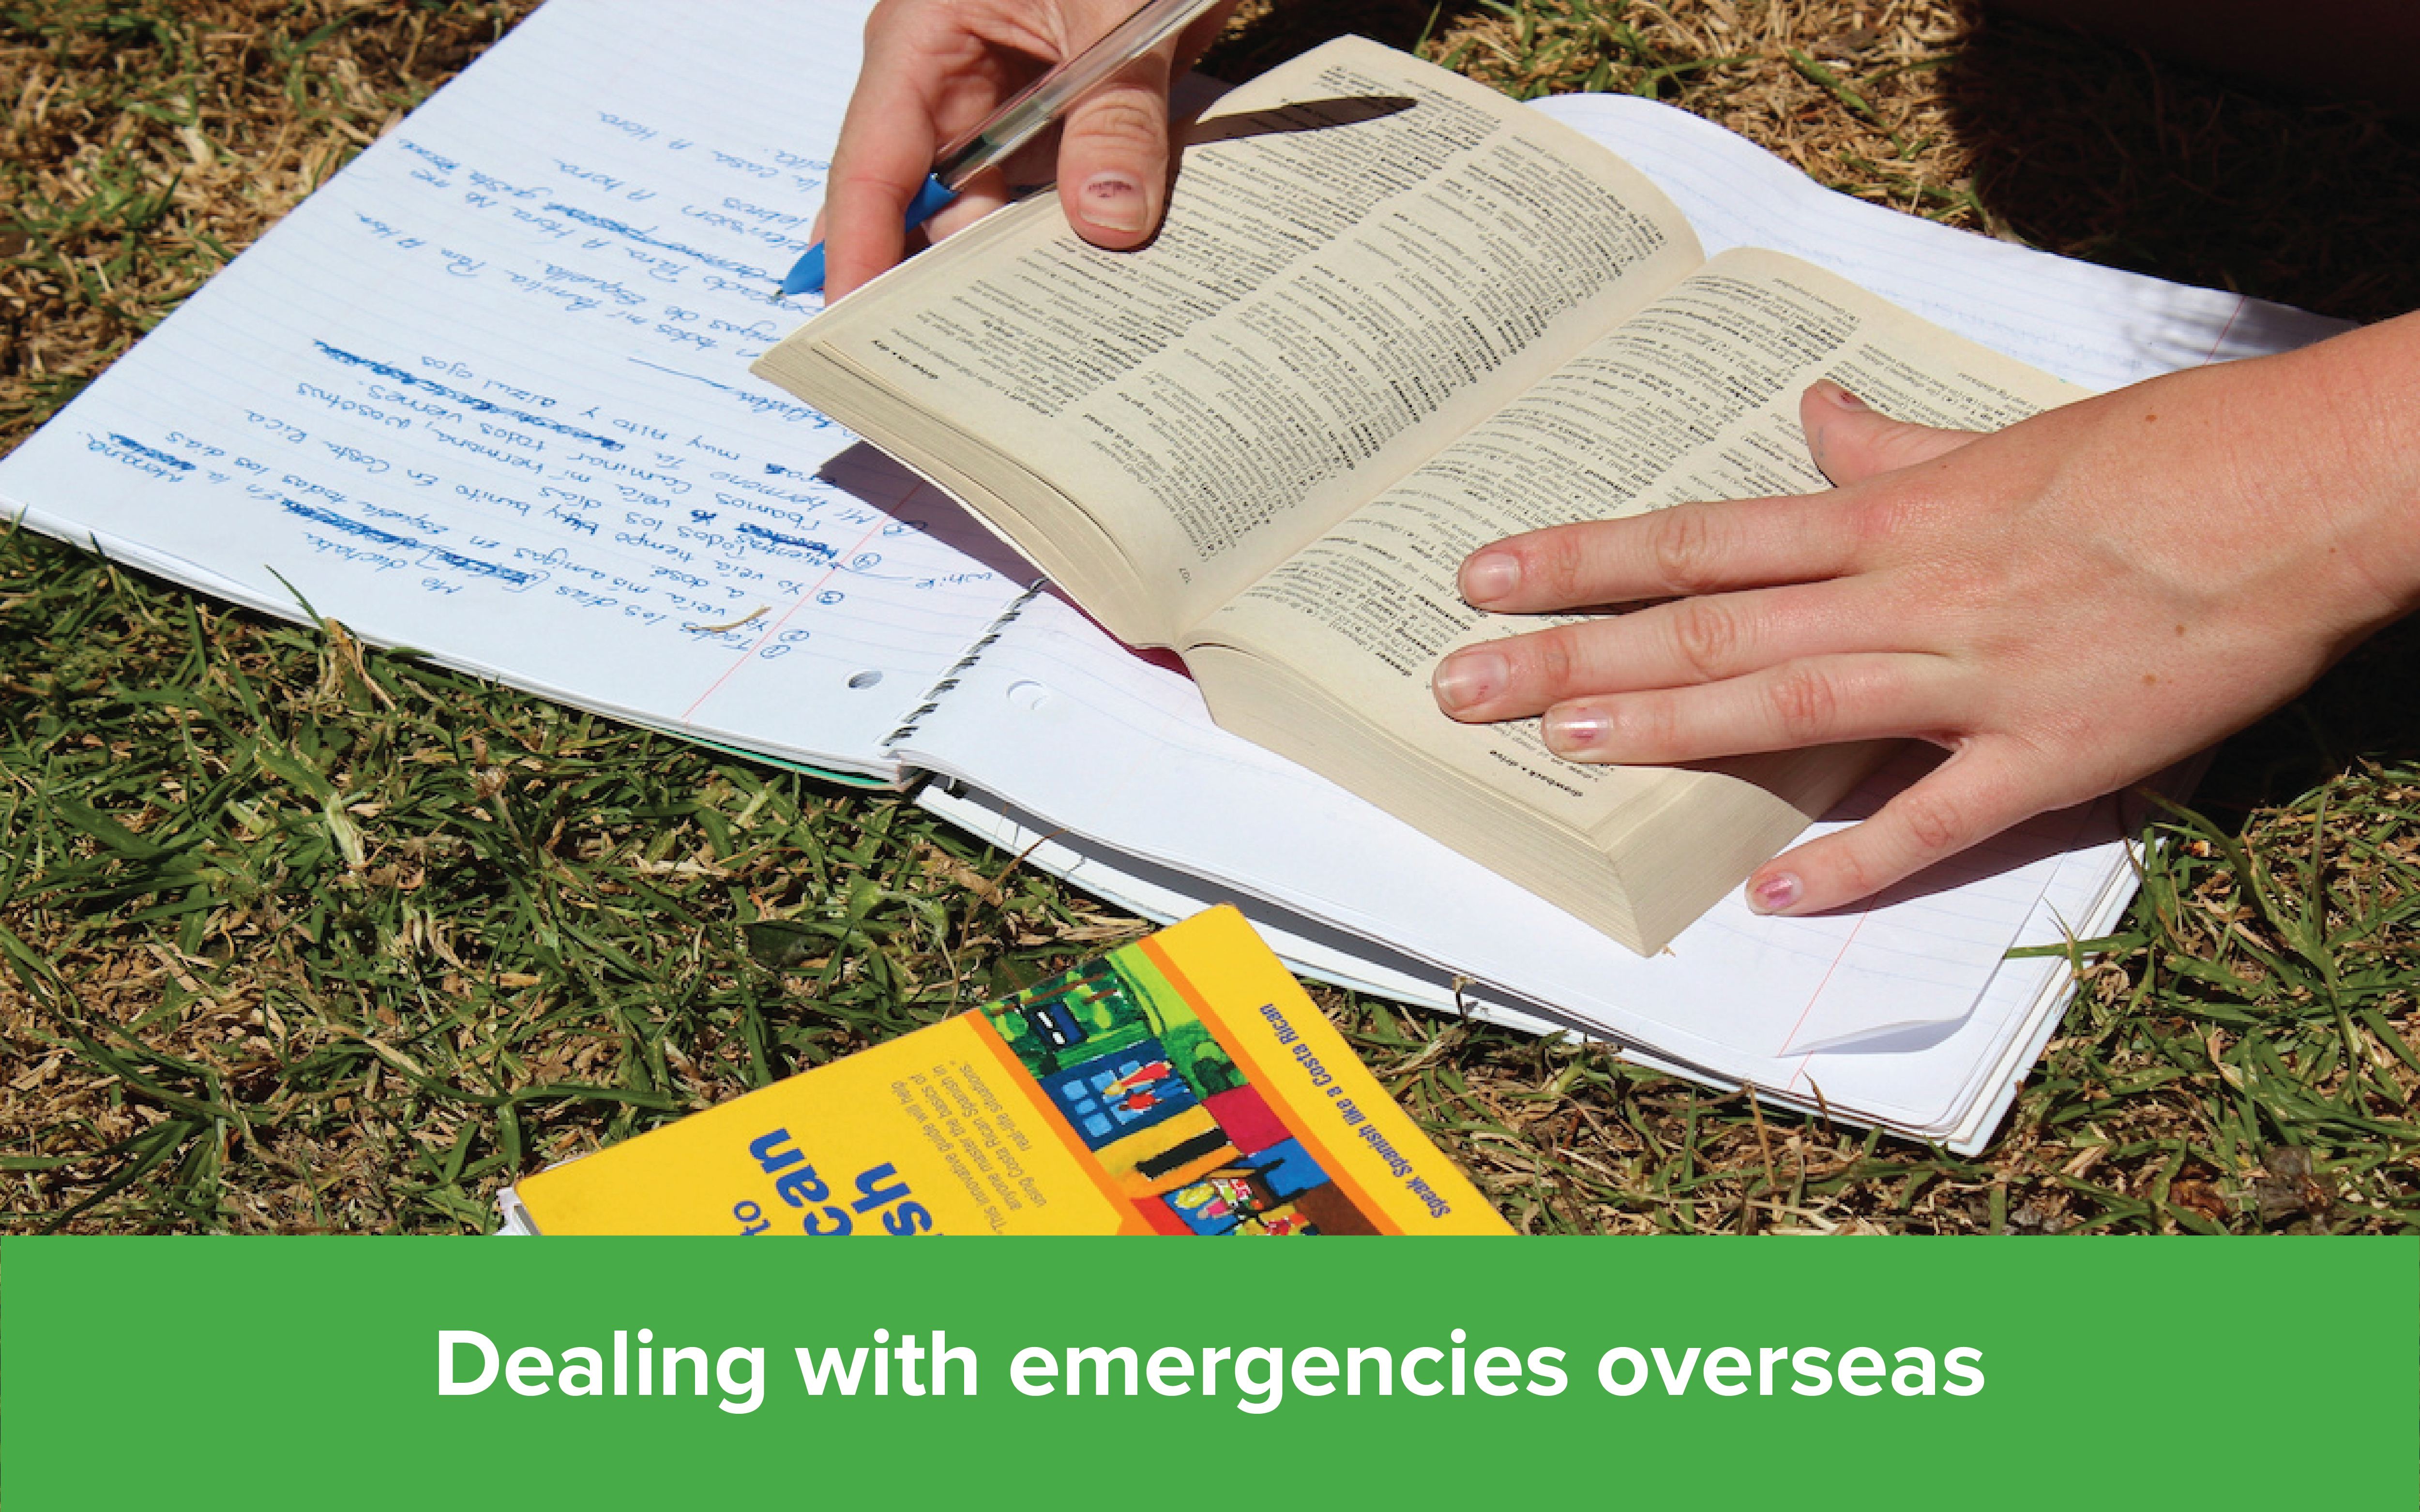 Dealing with emergencies overseas